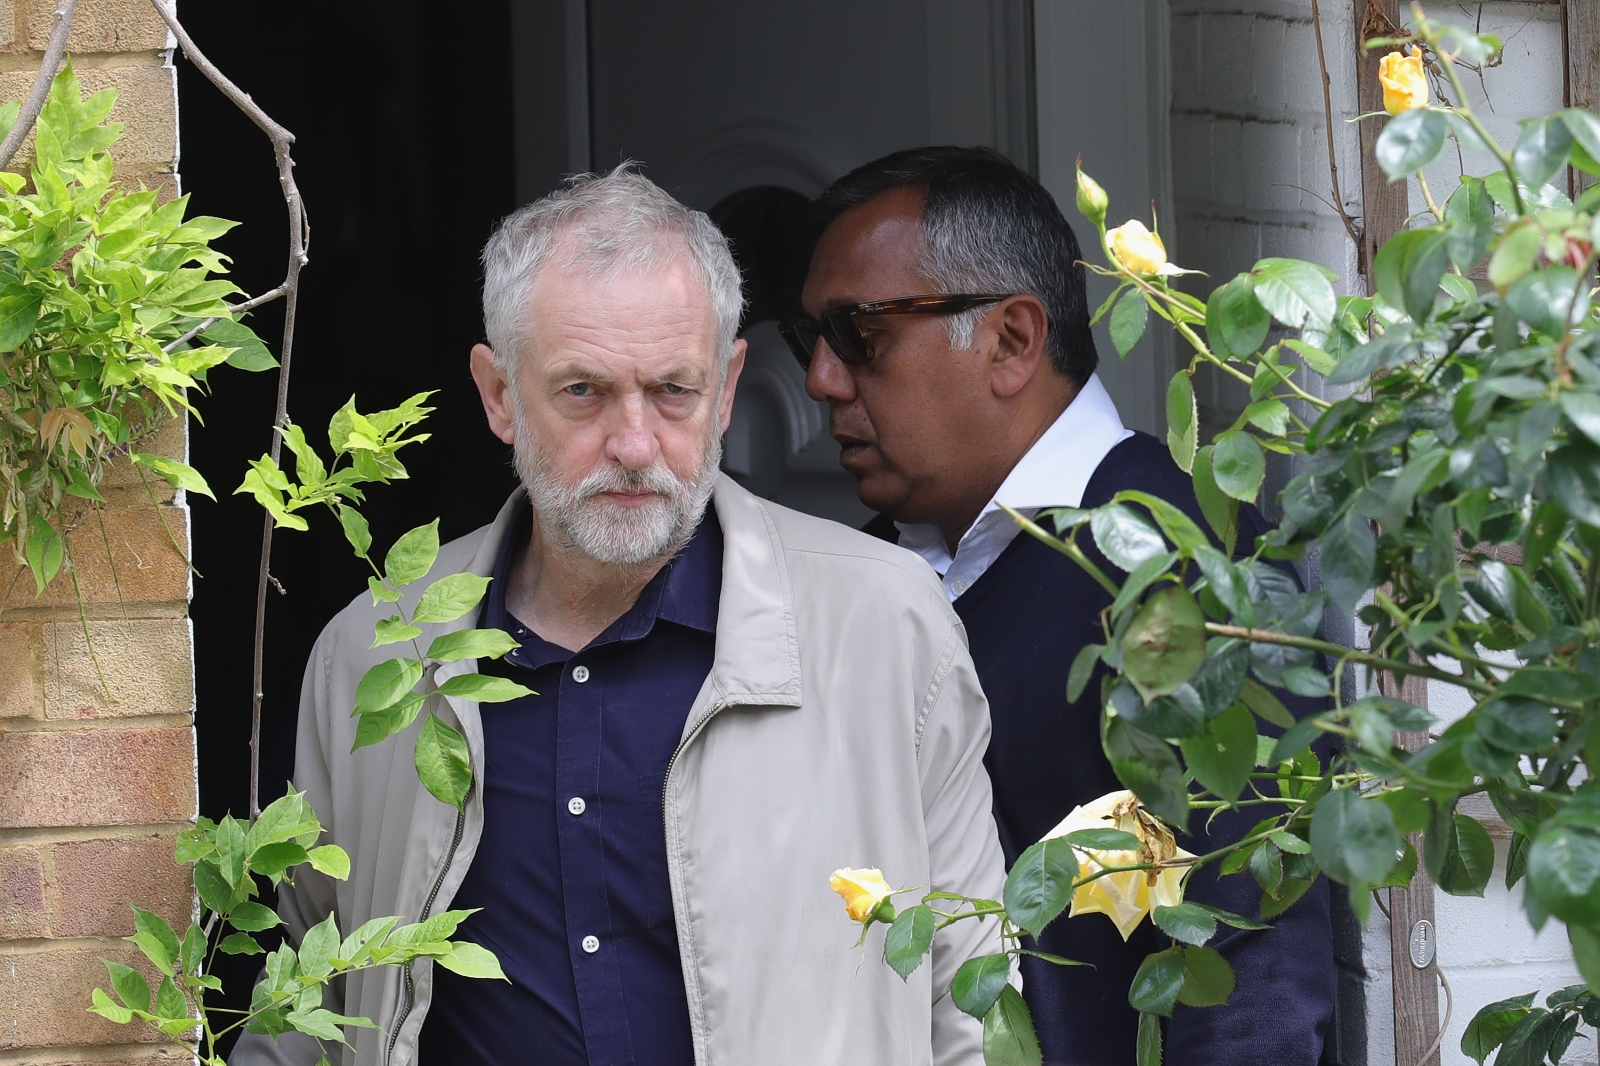 Corbyn outside his front door